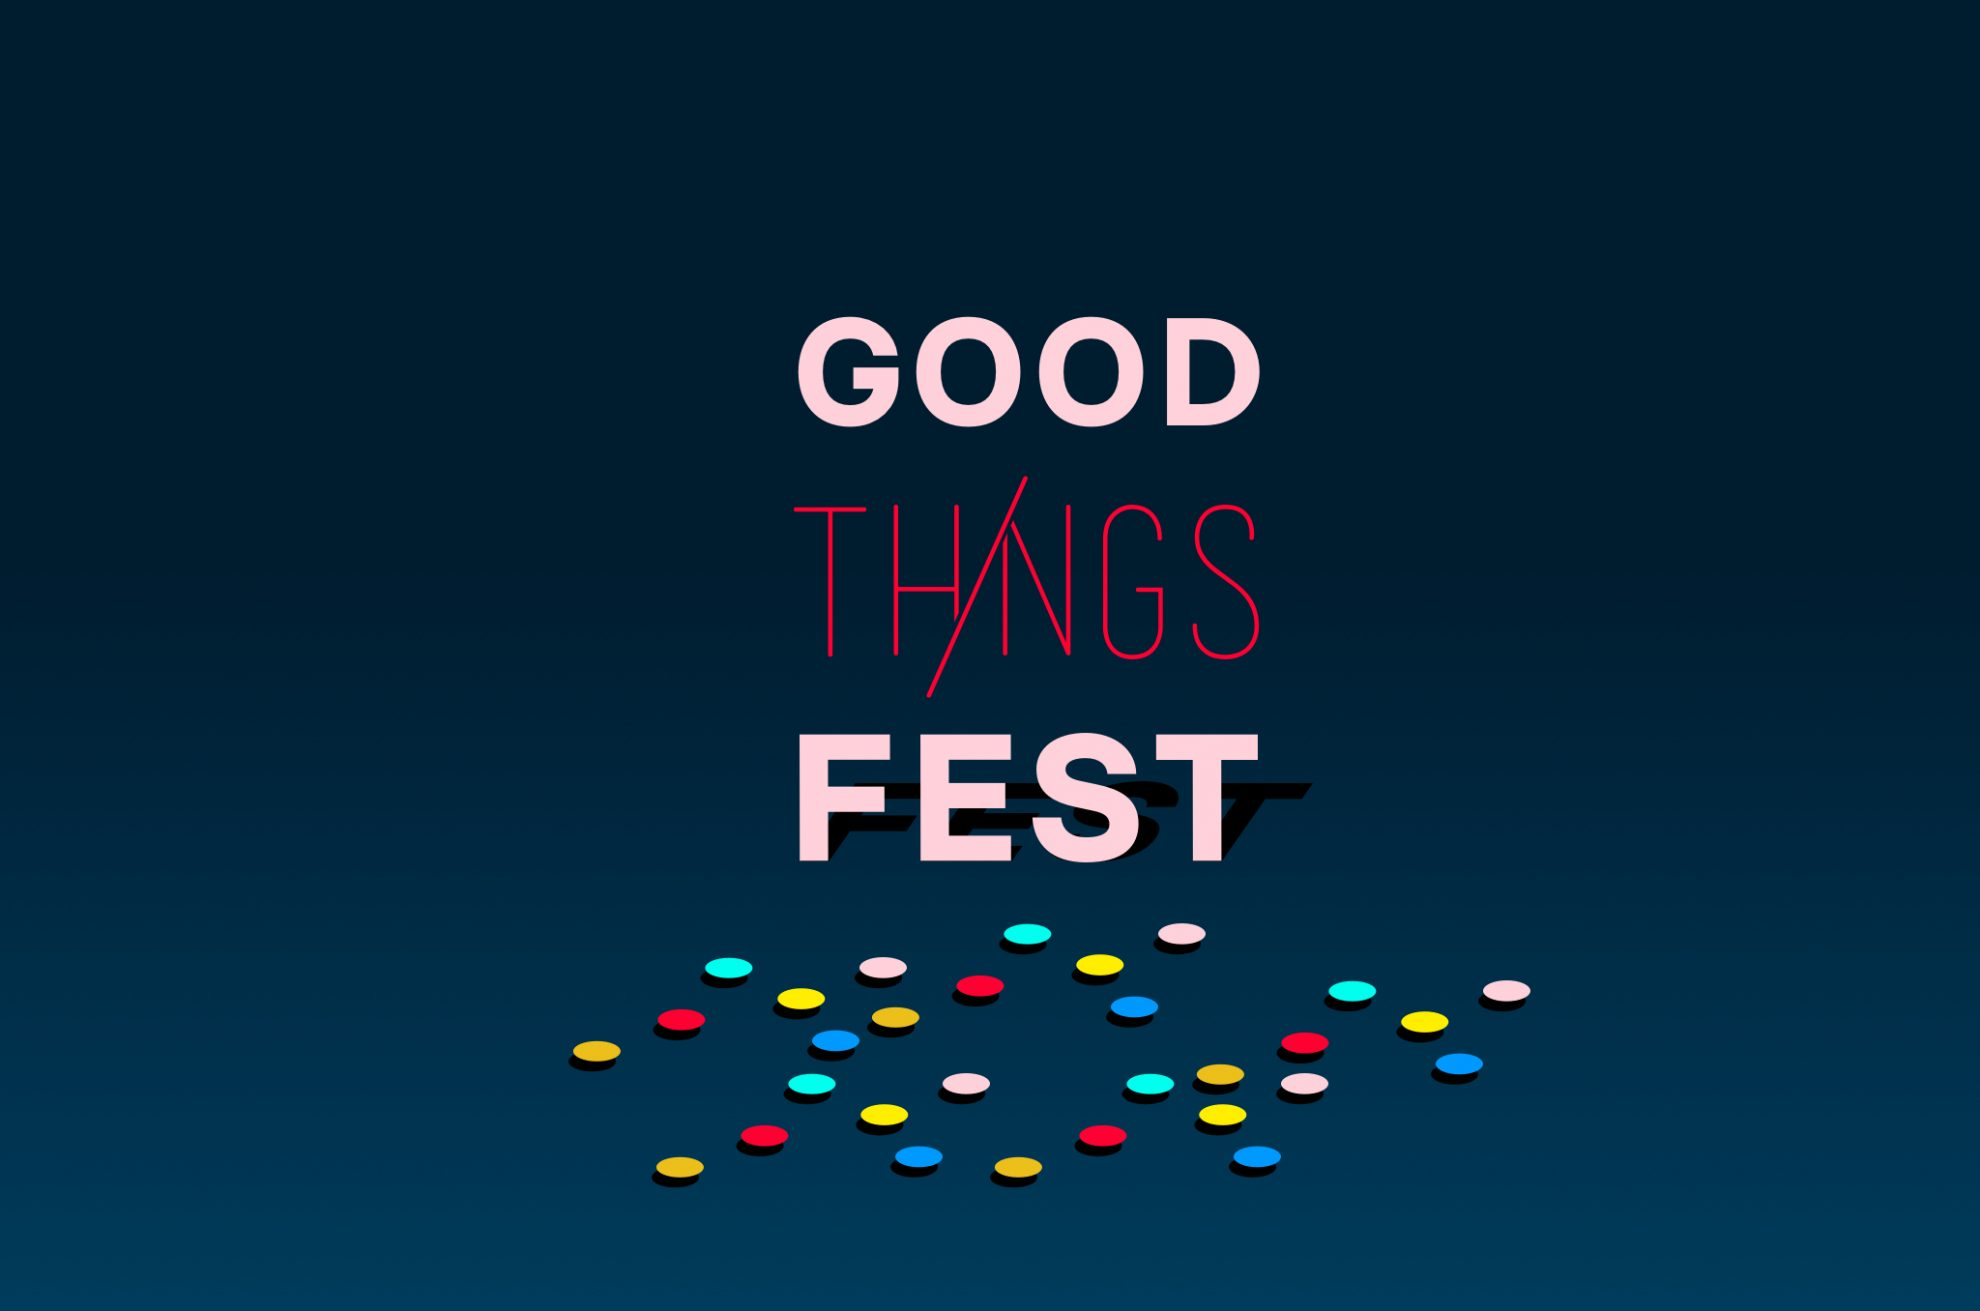 Good Things Fest banner